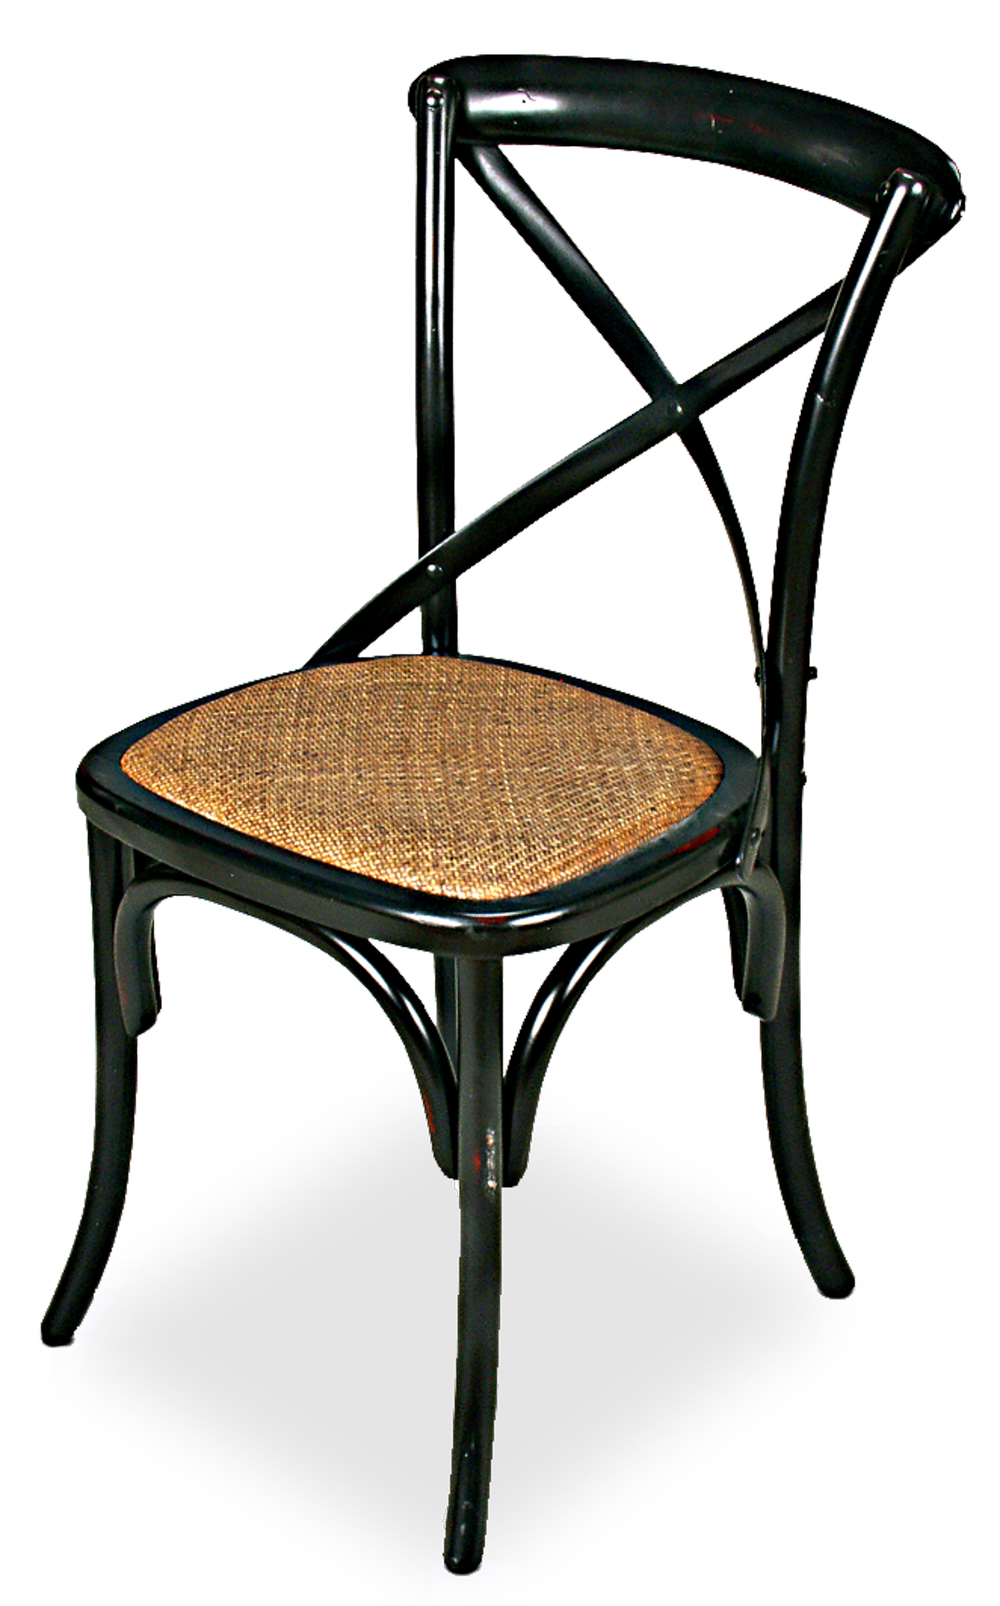 Sarreid - Tuileries Gardens Chair